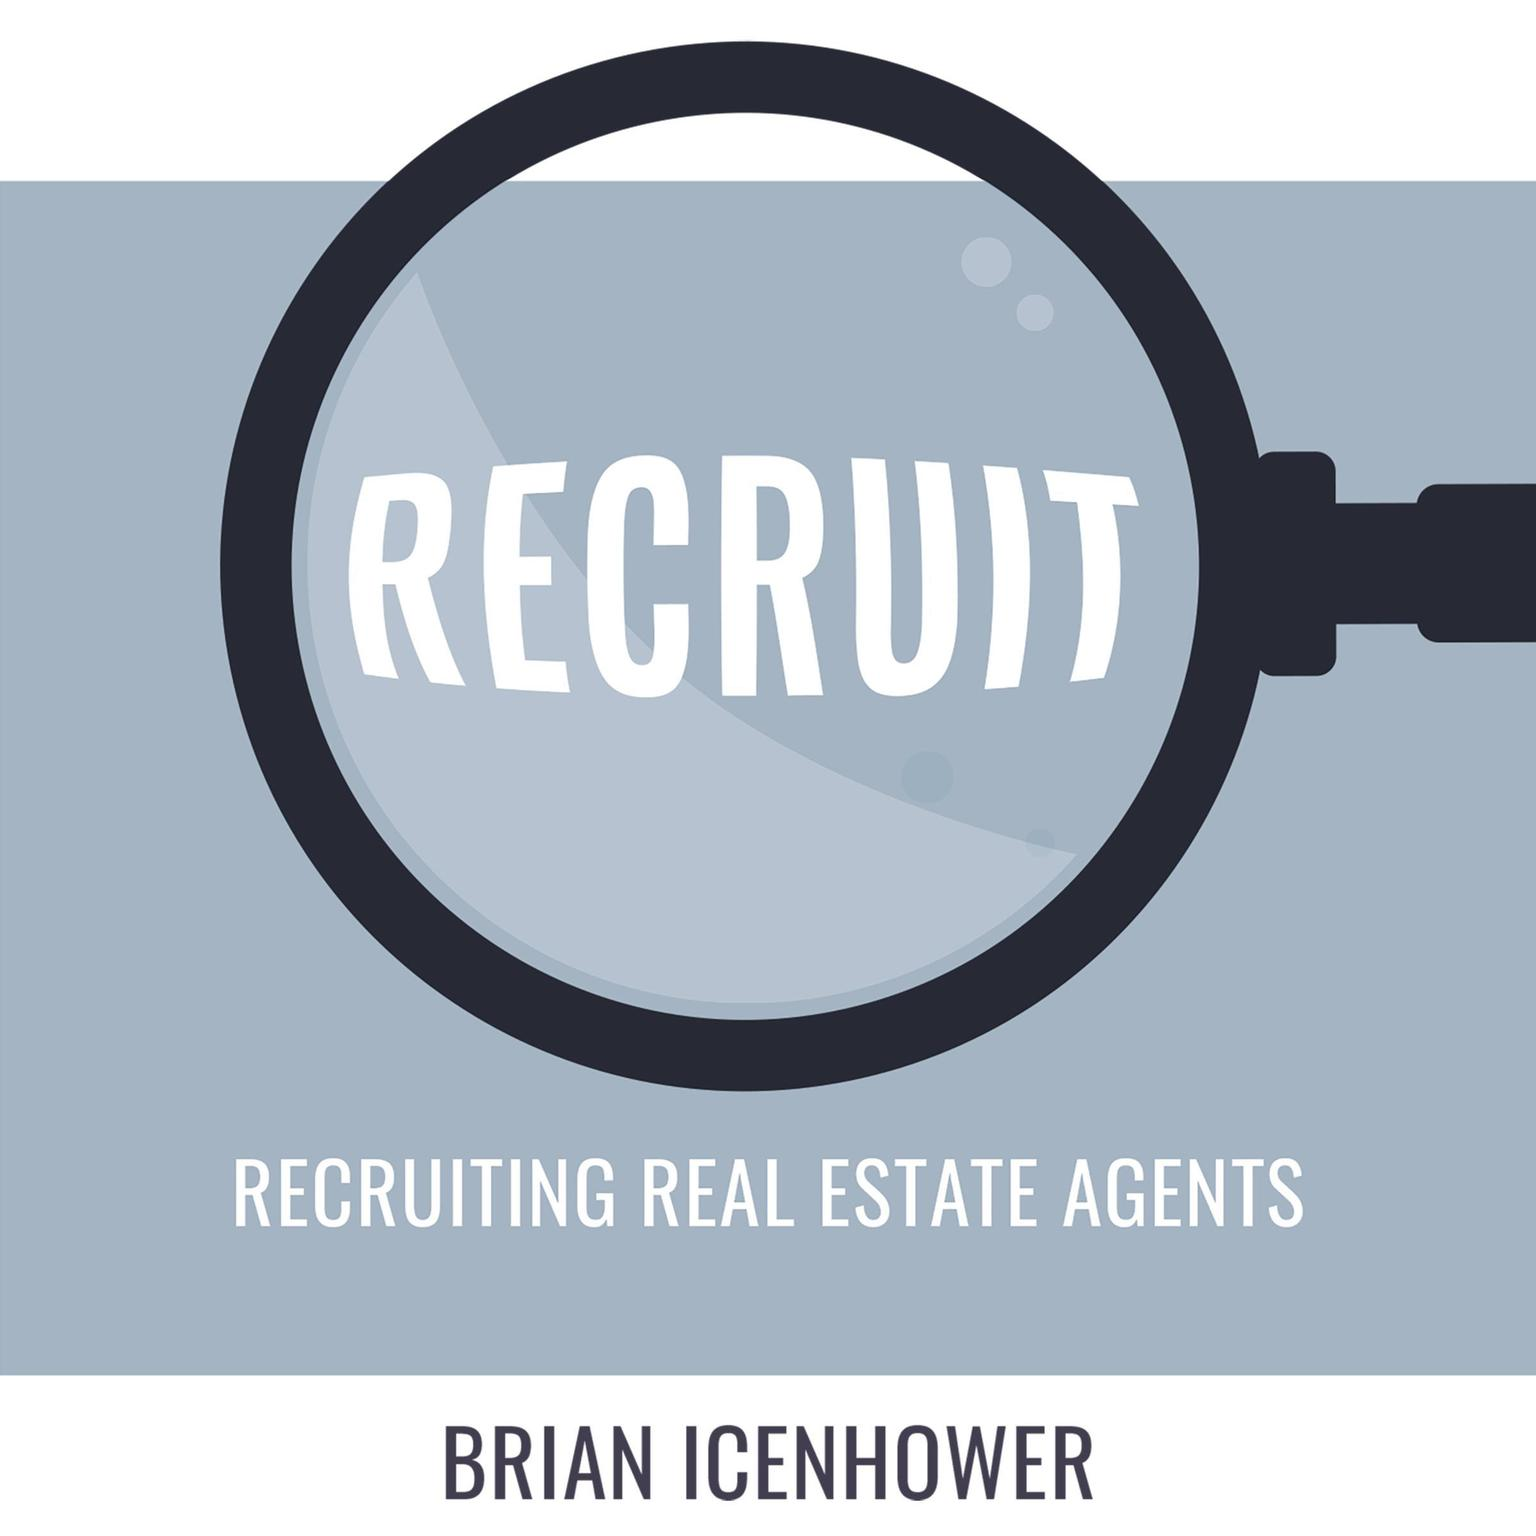 RECRUIT: Recruiting Real Estate Agents Audiobook, by Brian Icenhower